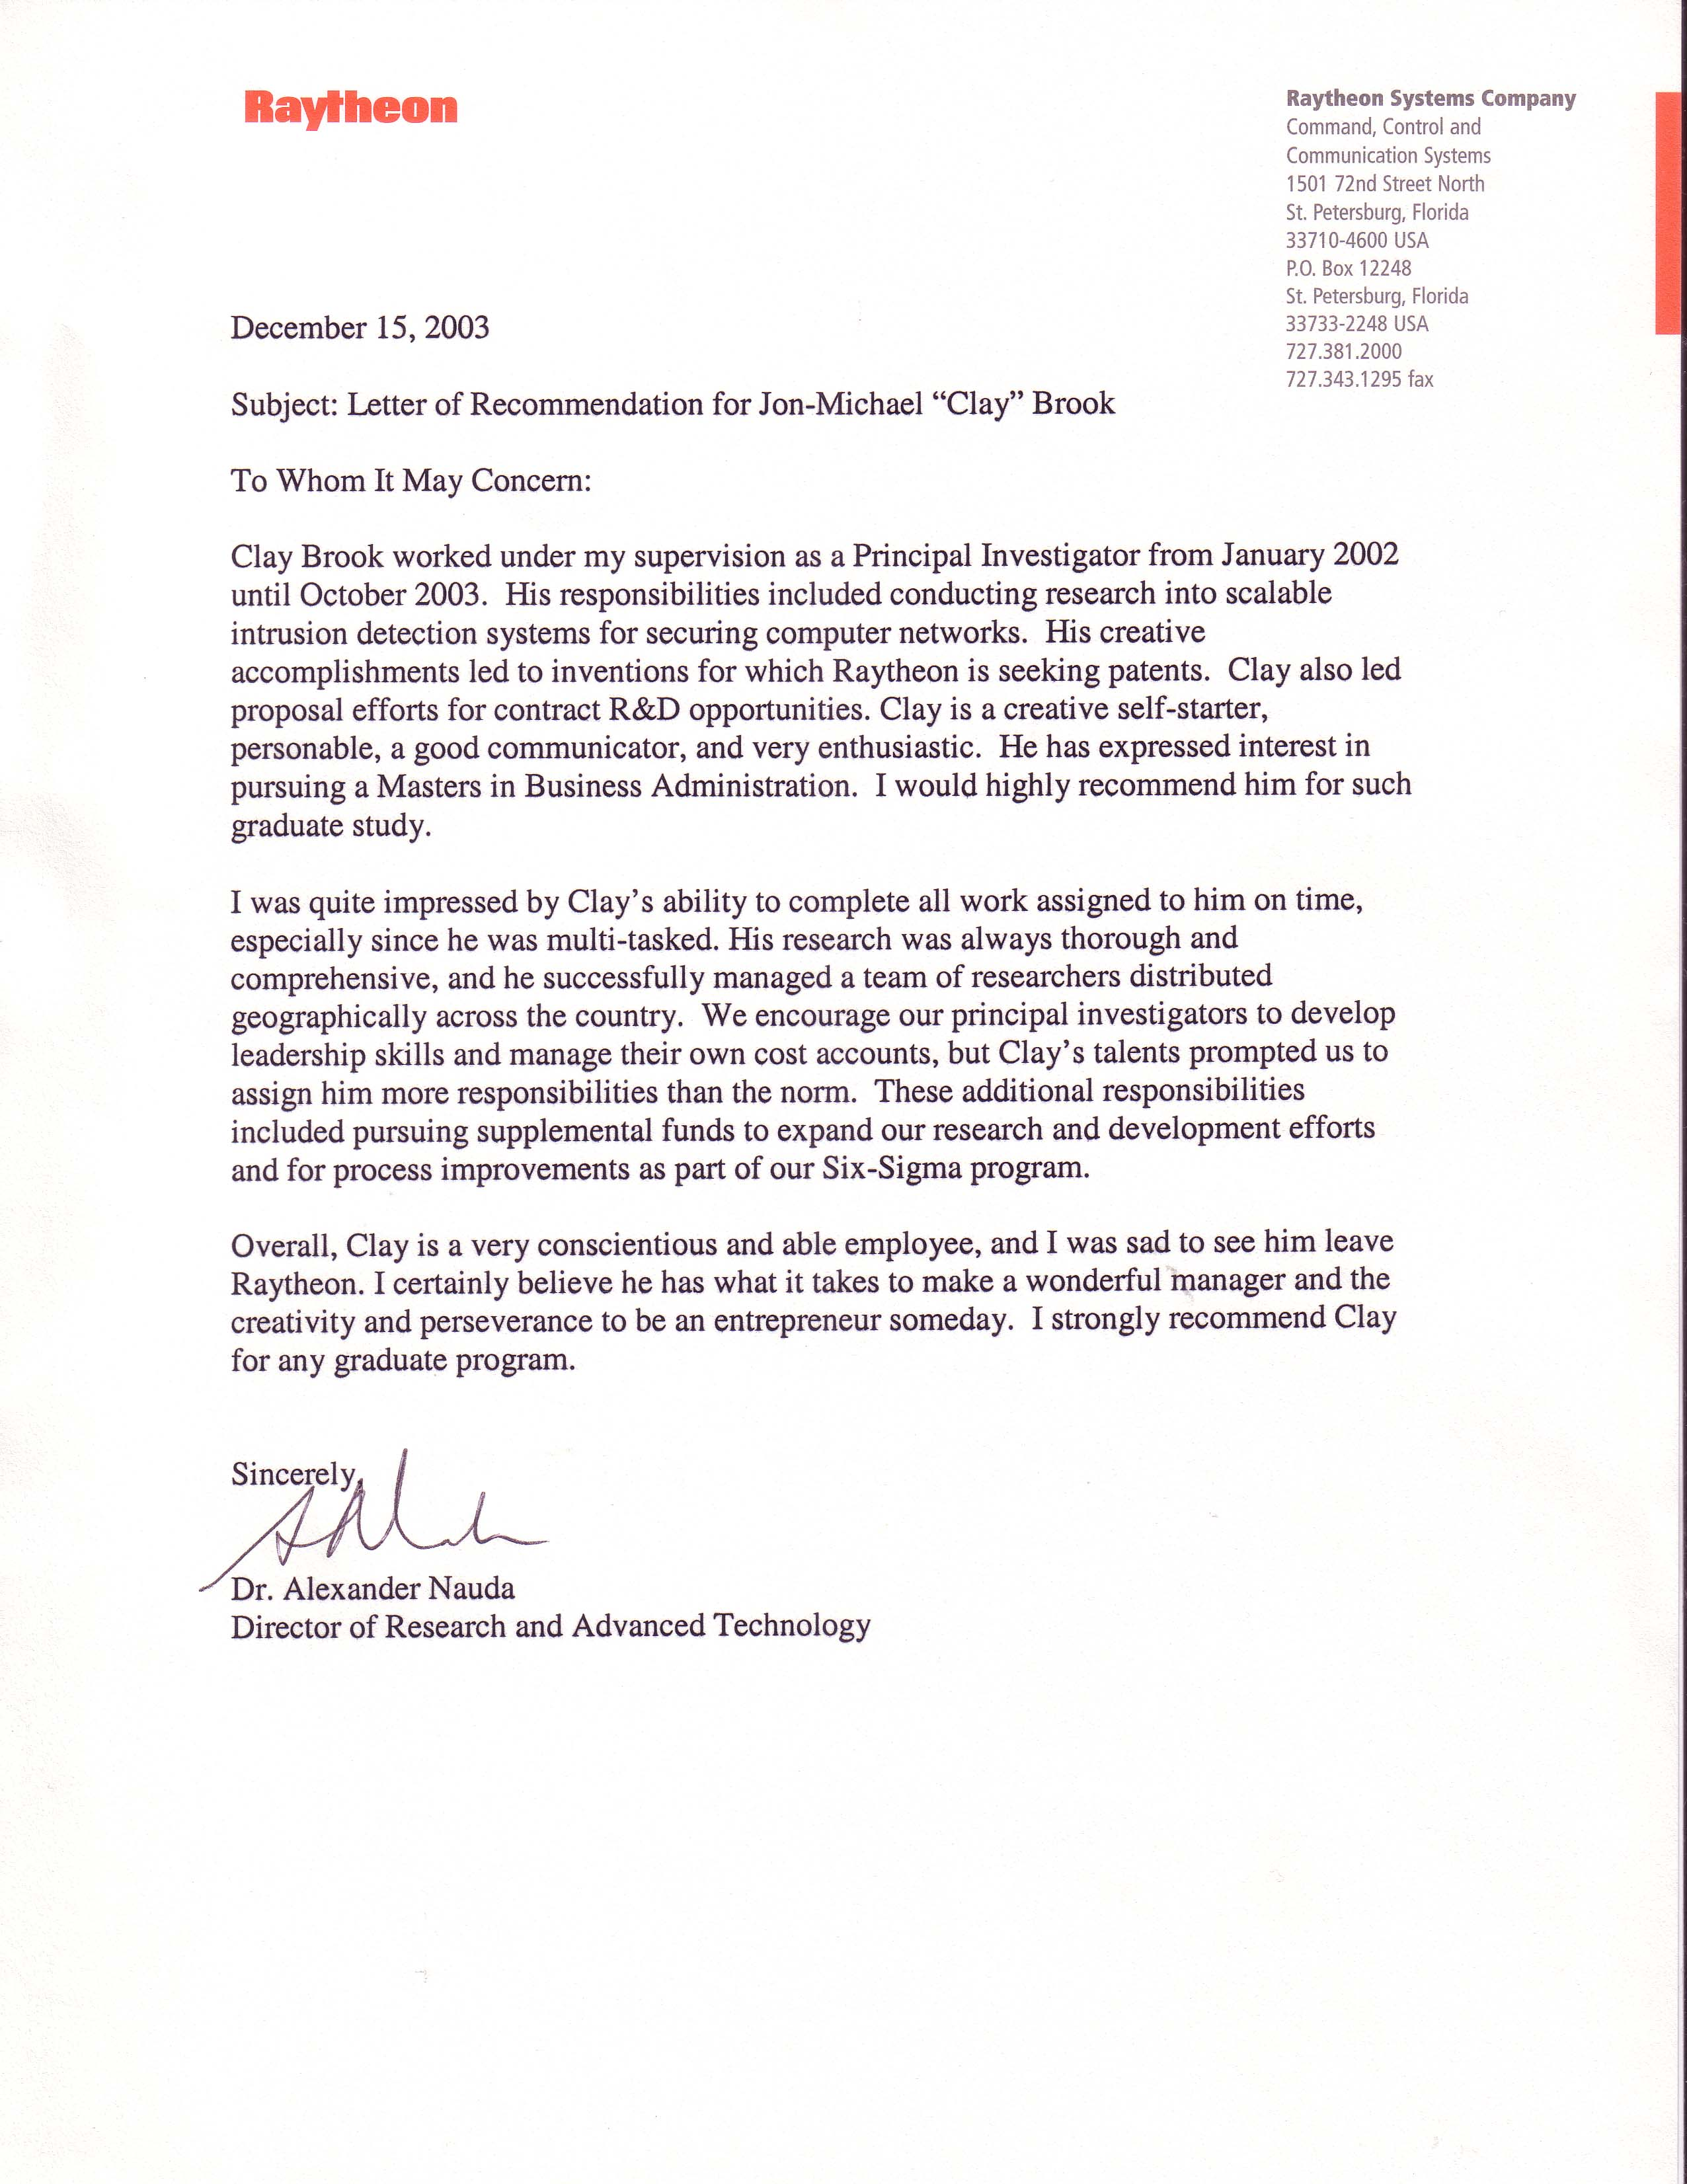 Recommendation Letter For Business Improvement   Academic Teaching